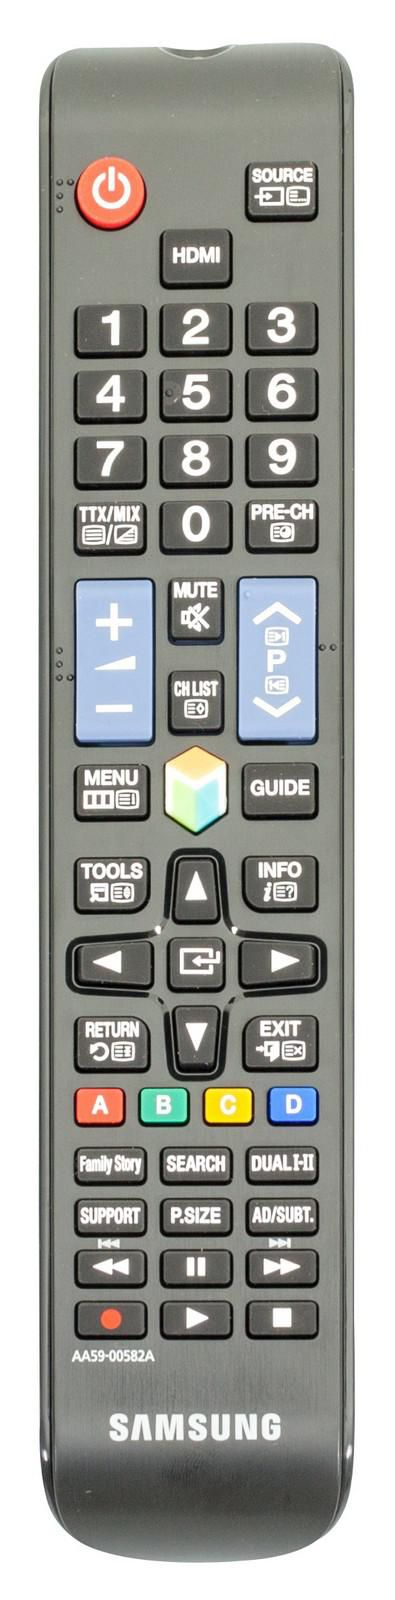 Samsung Remote Control TM1250 EUROPE - Approx 1-3 working day lead.